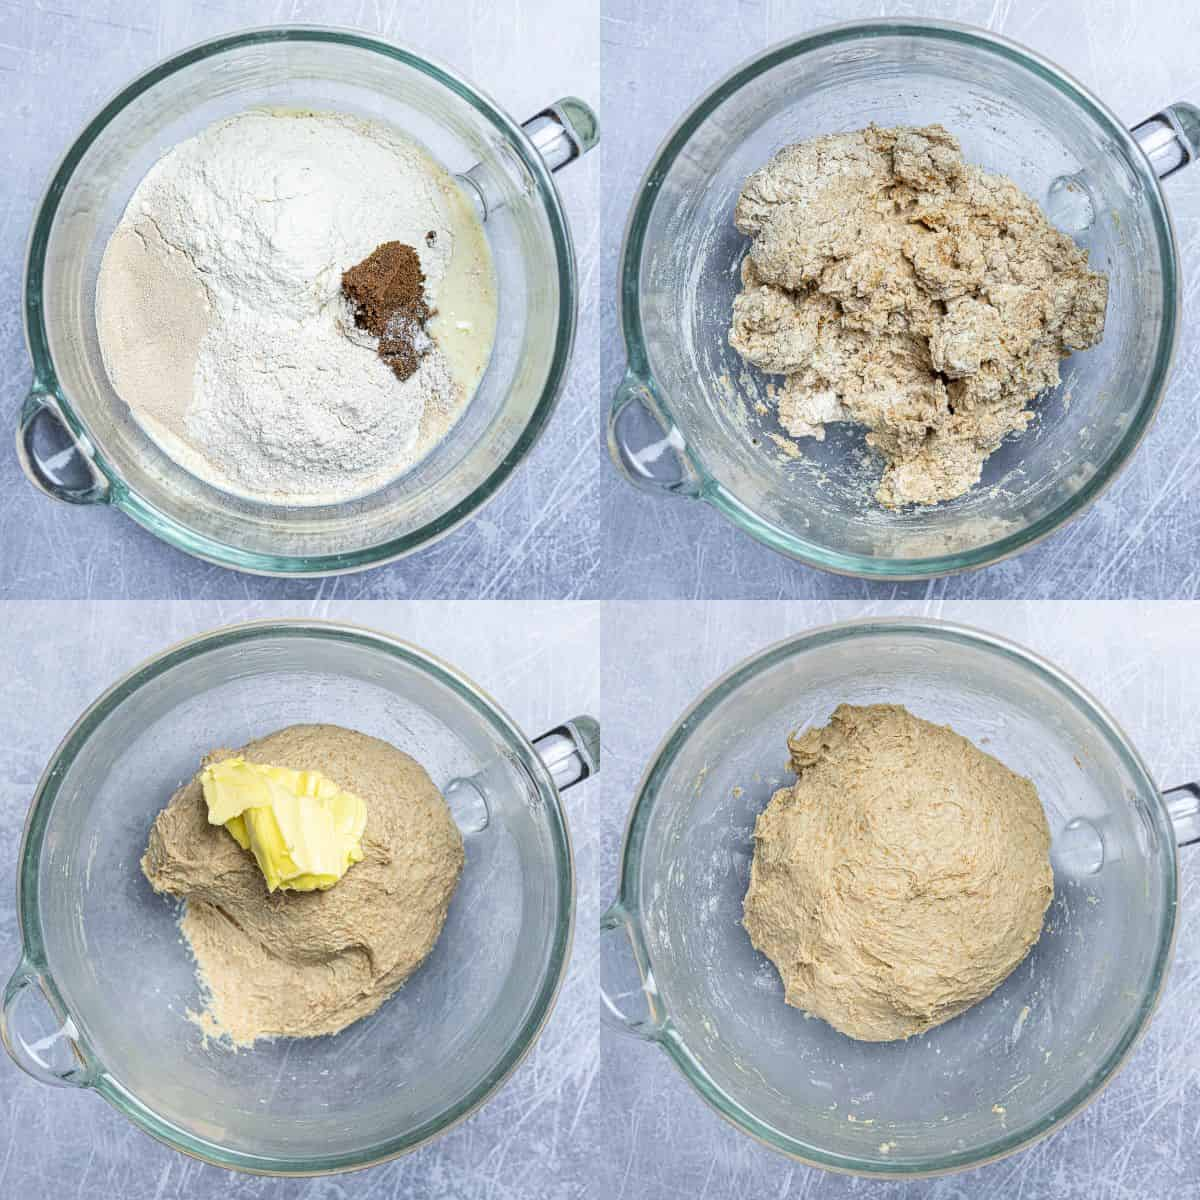 Step 2, a four image collage of adding the ingredients to the bowl, the unkneaded dough, adding the butter and the kneaded dough.